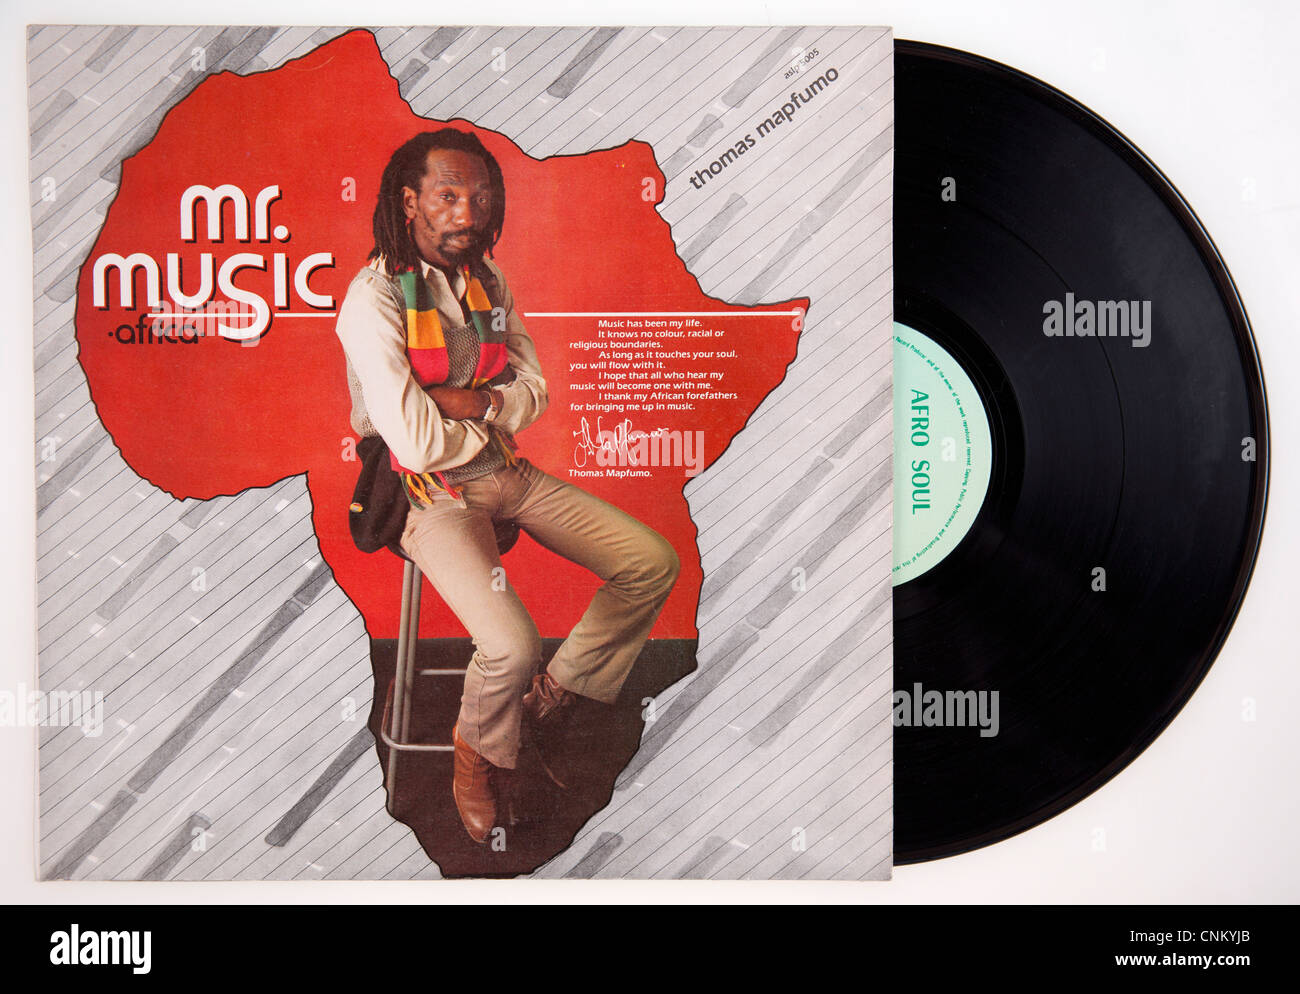 Cover of vinyl album 'Mr Music (Africa)' by Thomas Mapfumo & The Blacks Unlimited released 1985 on Afro Soul Records Stock Photo